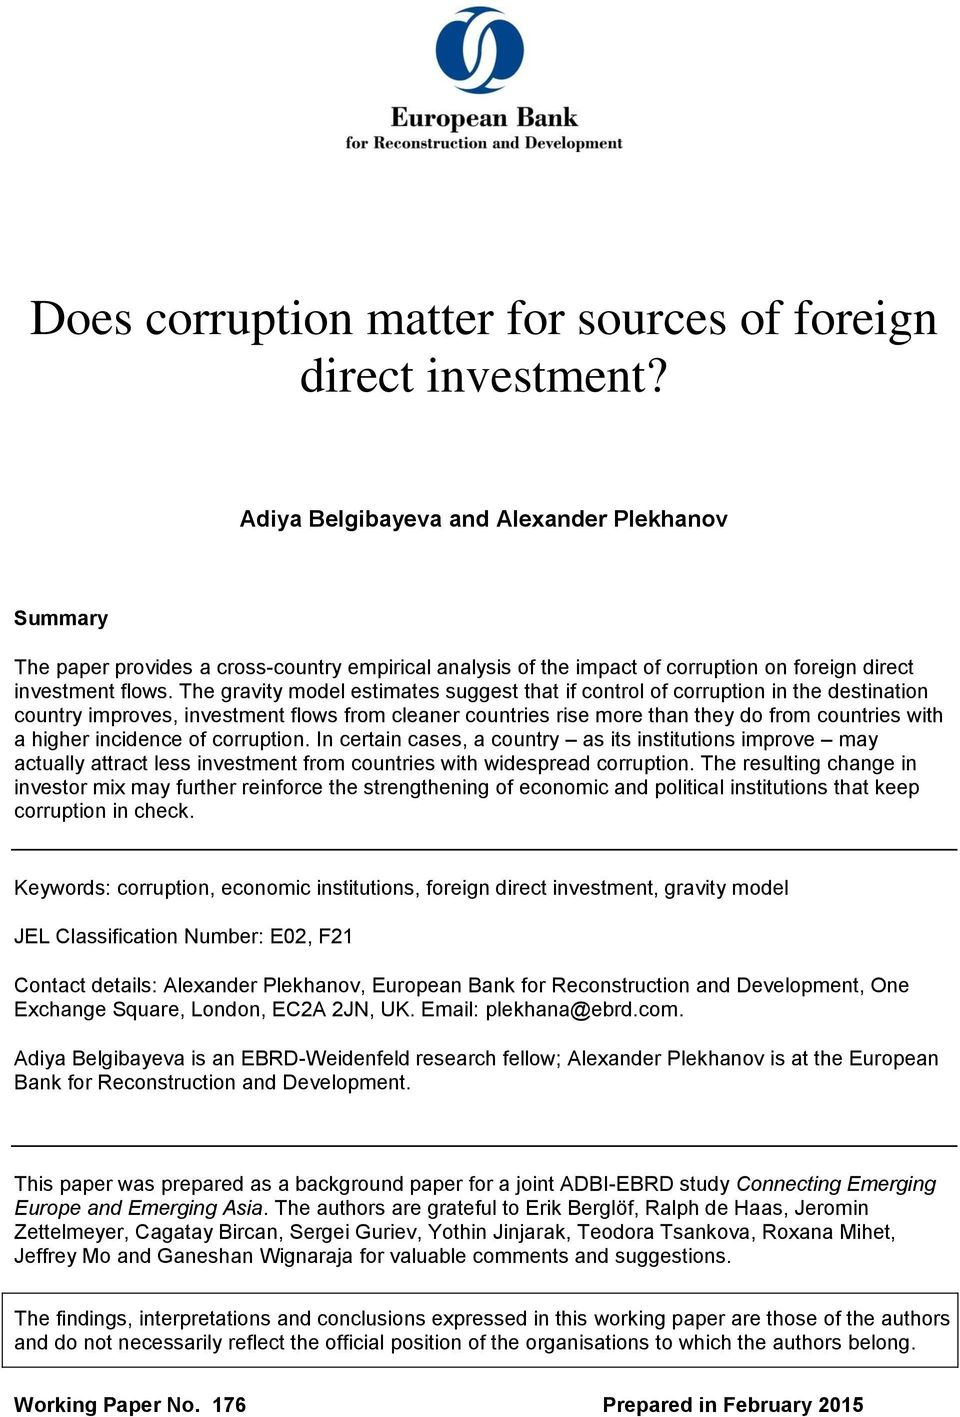 The gravity model estimates suggest that if control of corruption in the destination country improves, investment flows from cleaner countries rise more than they do from countries with a higher